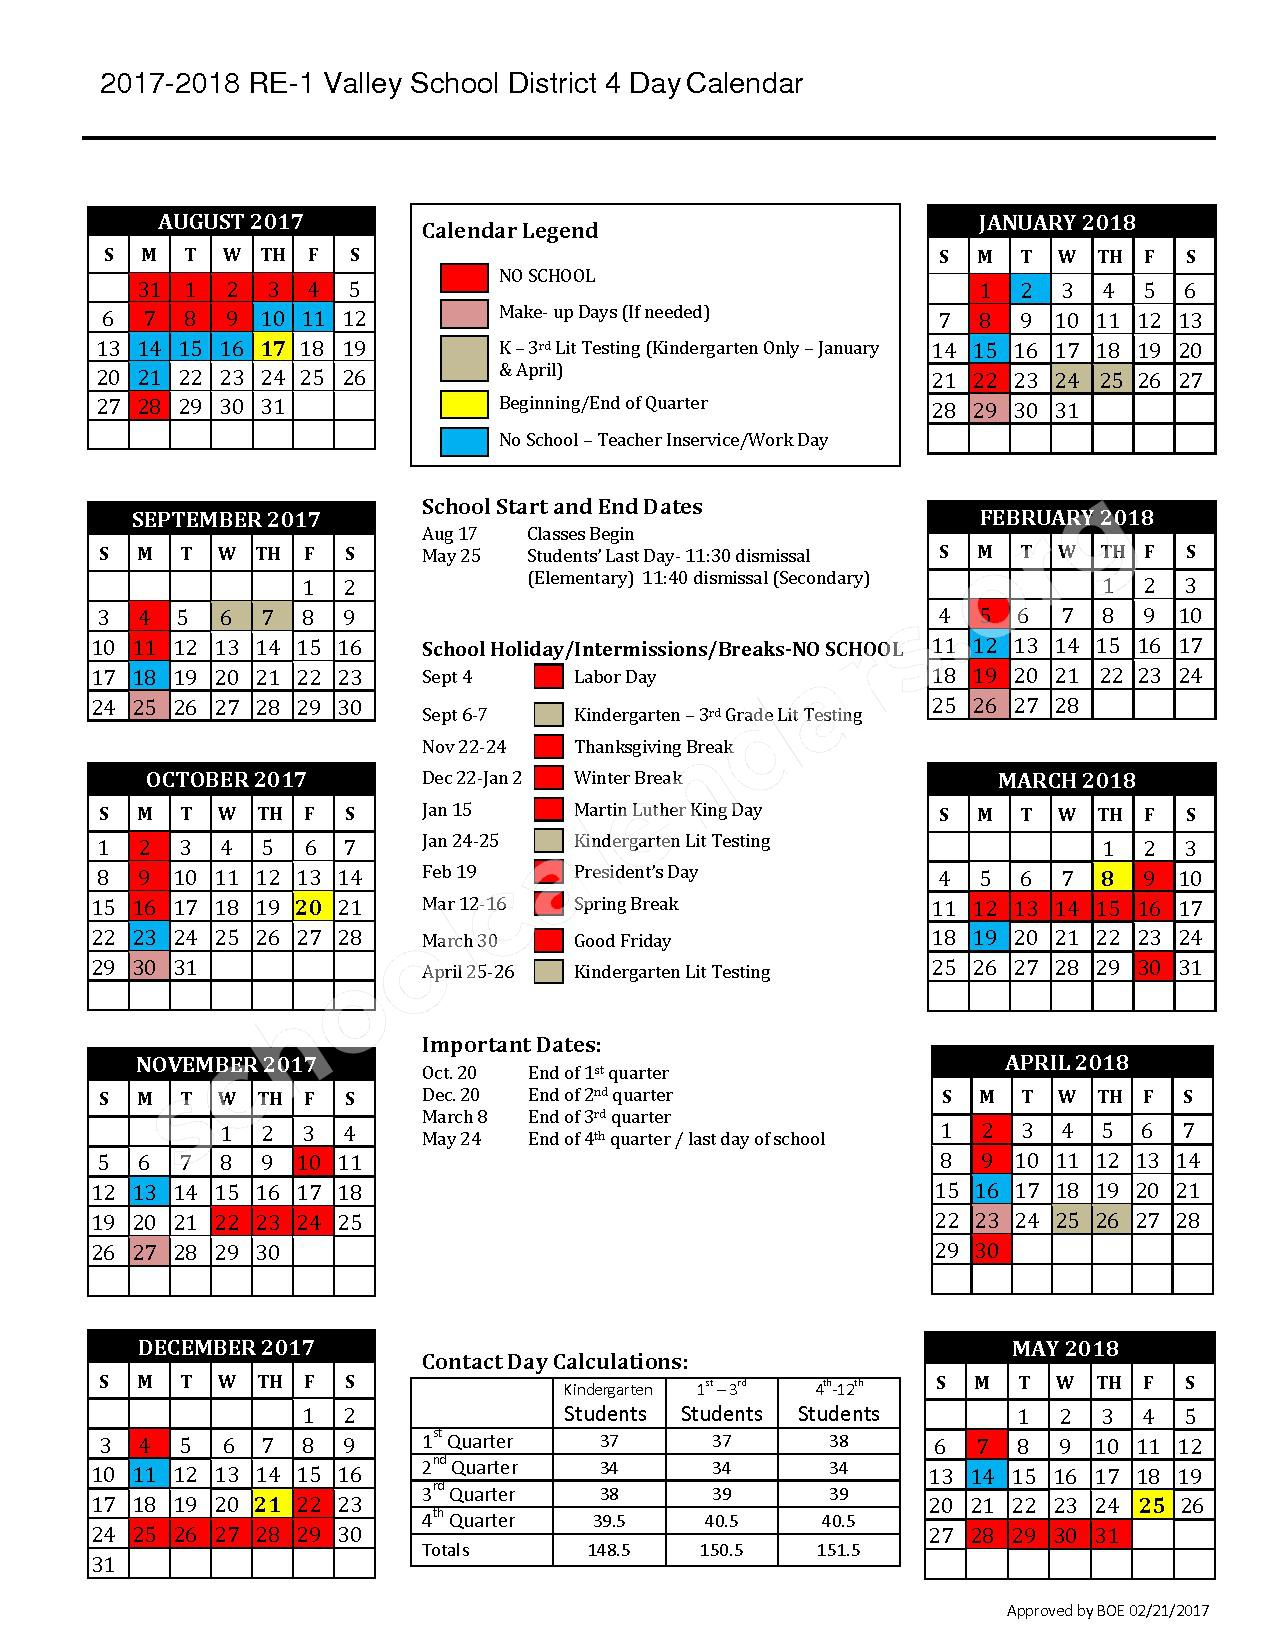 2017 - 2018 District Calendar – Valley School District RE-1 – page 1